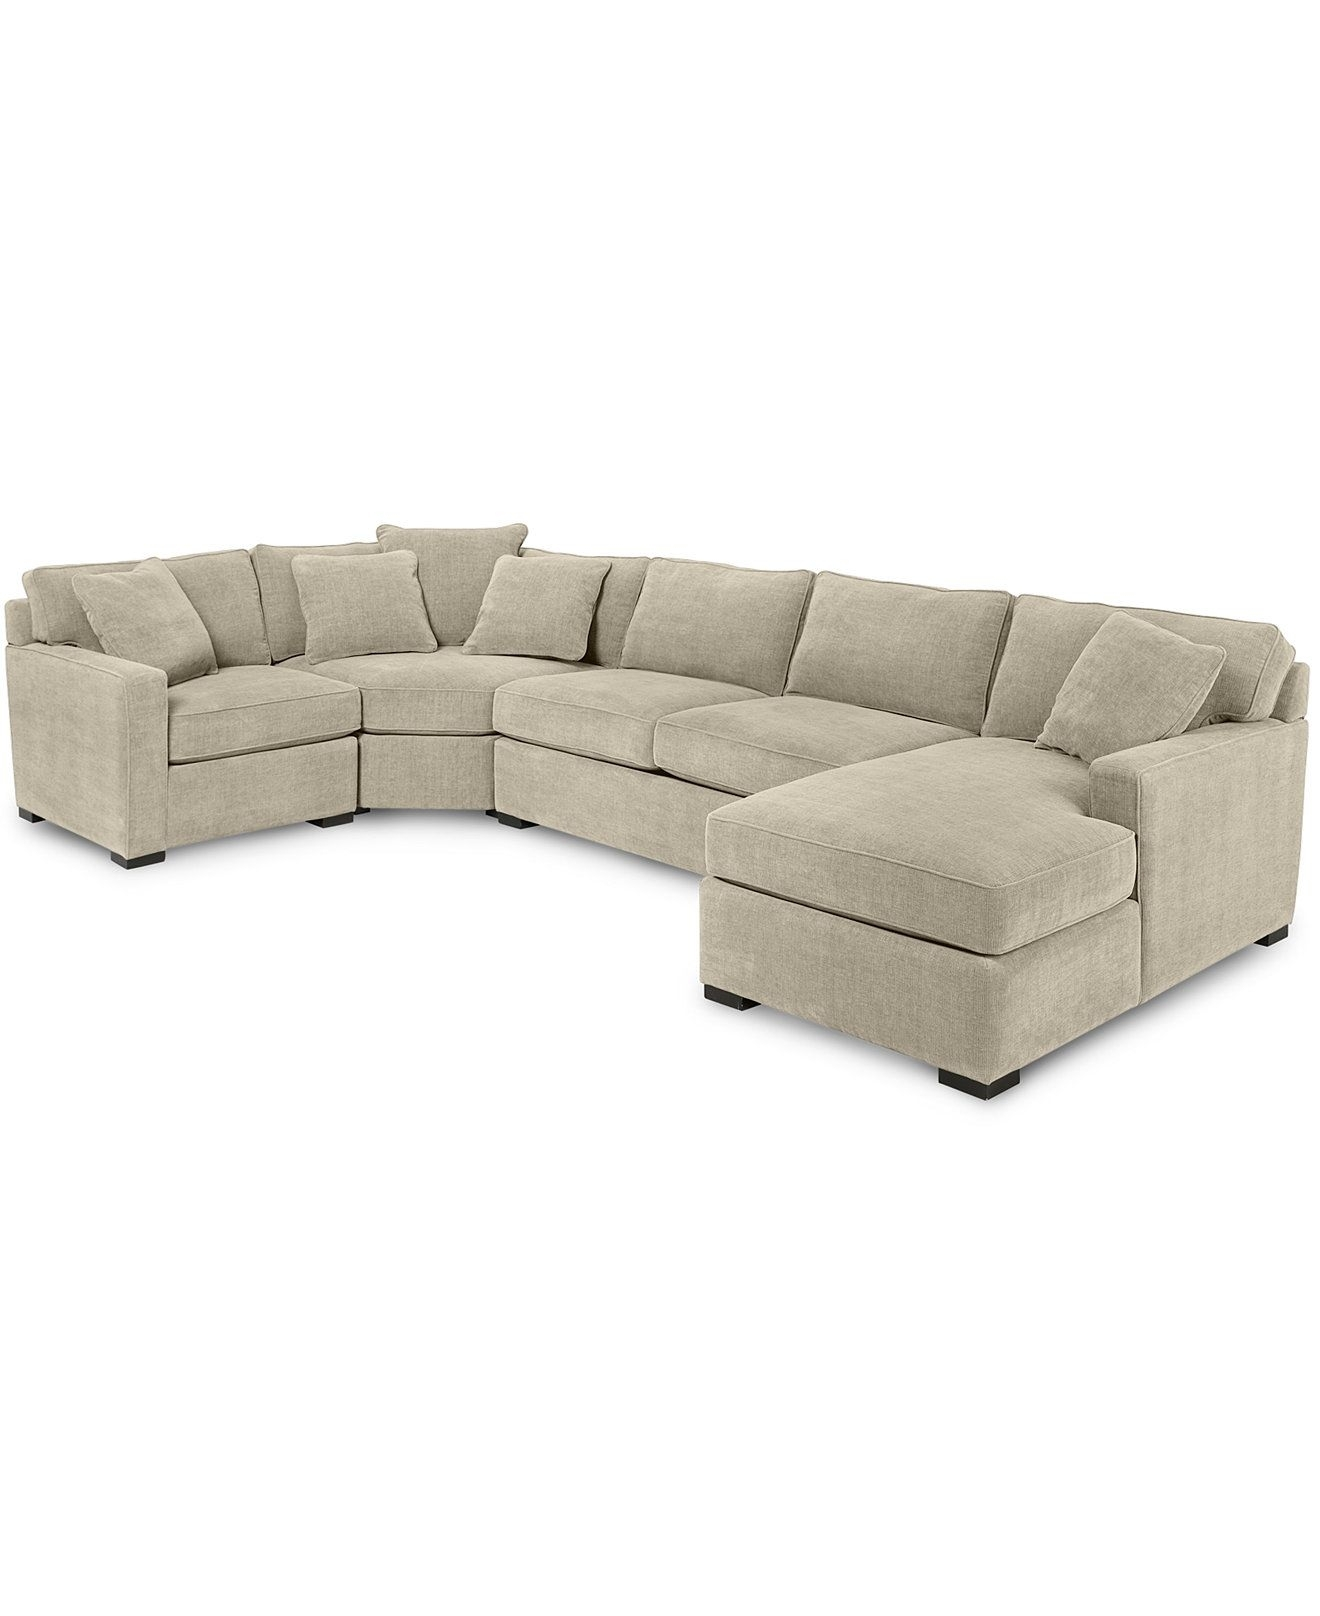 Radley 4-Piece Fabric Chaise Sectional Sofa, Created For Macy's for Norfolk Chocolate 3 Piece Sectionals With Raf Chaise (Image 23 of 30)